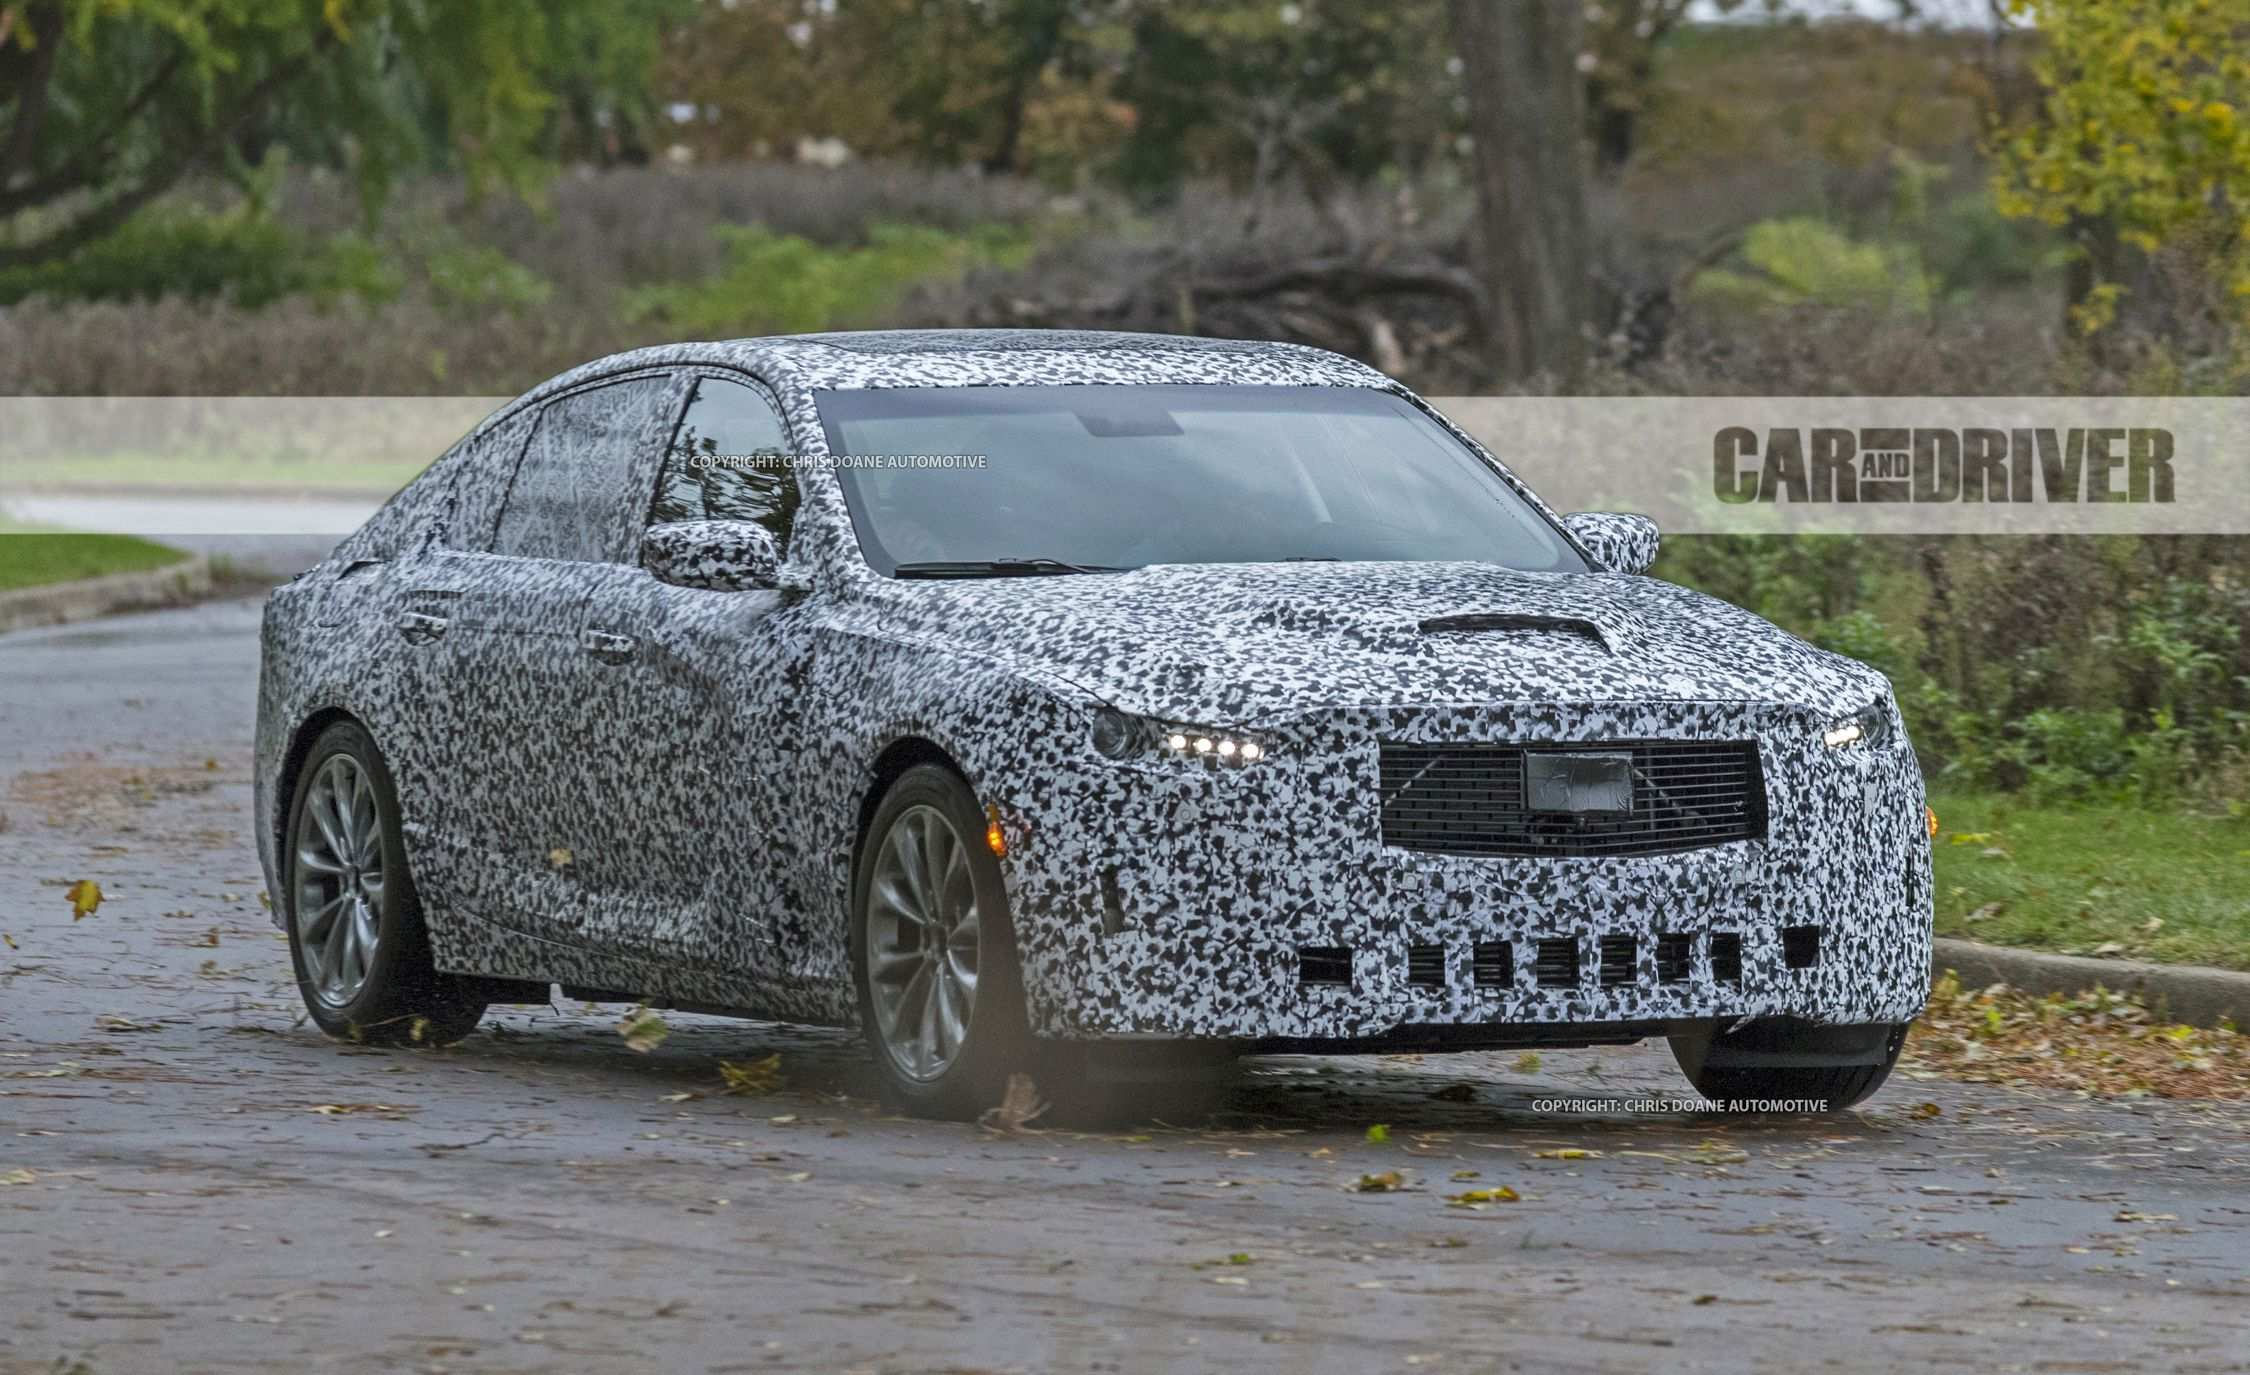 33 New What Cars Will Cadillac Make In 2020 Pictures